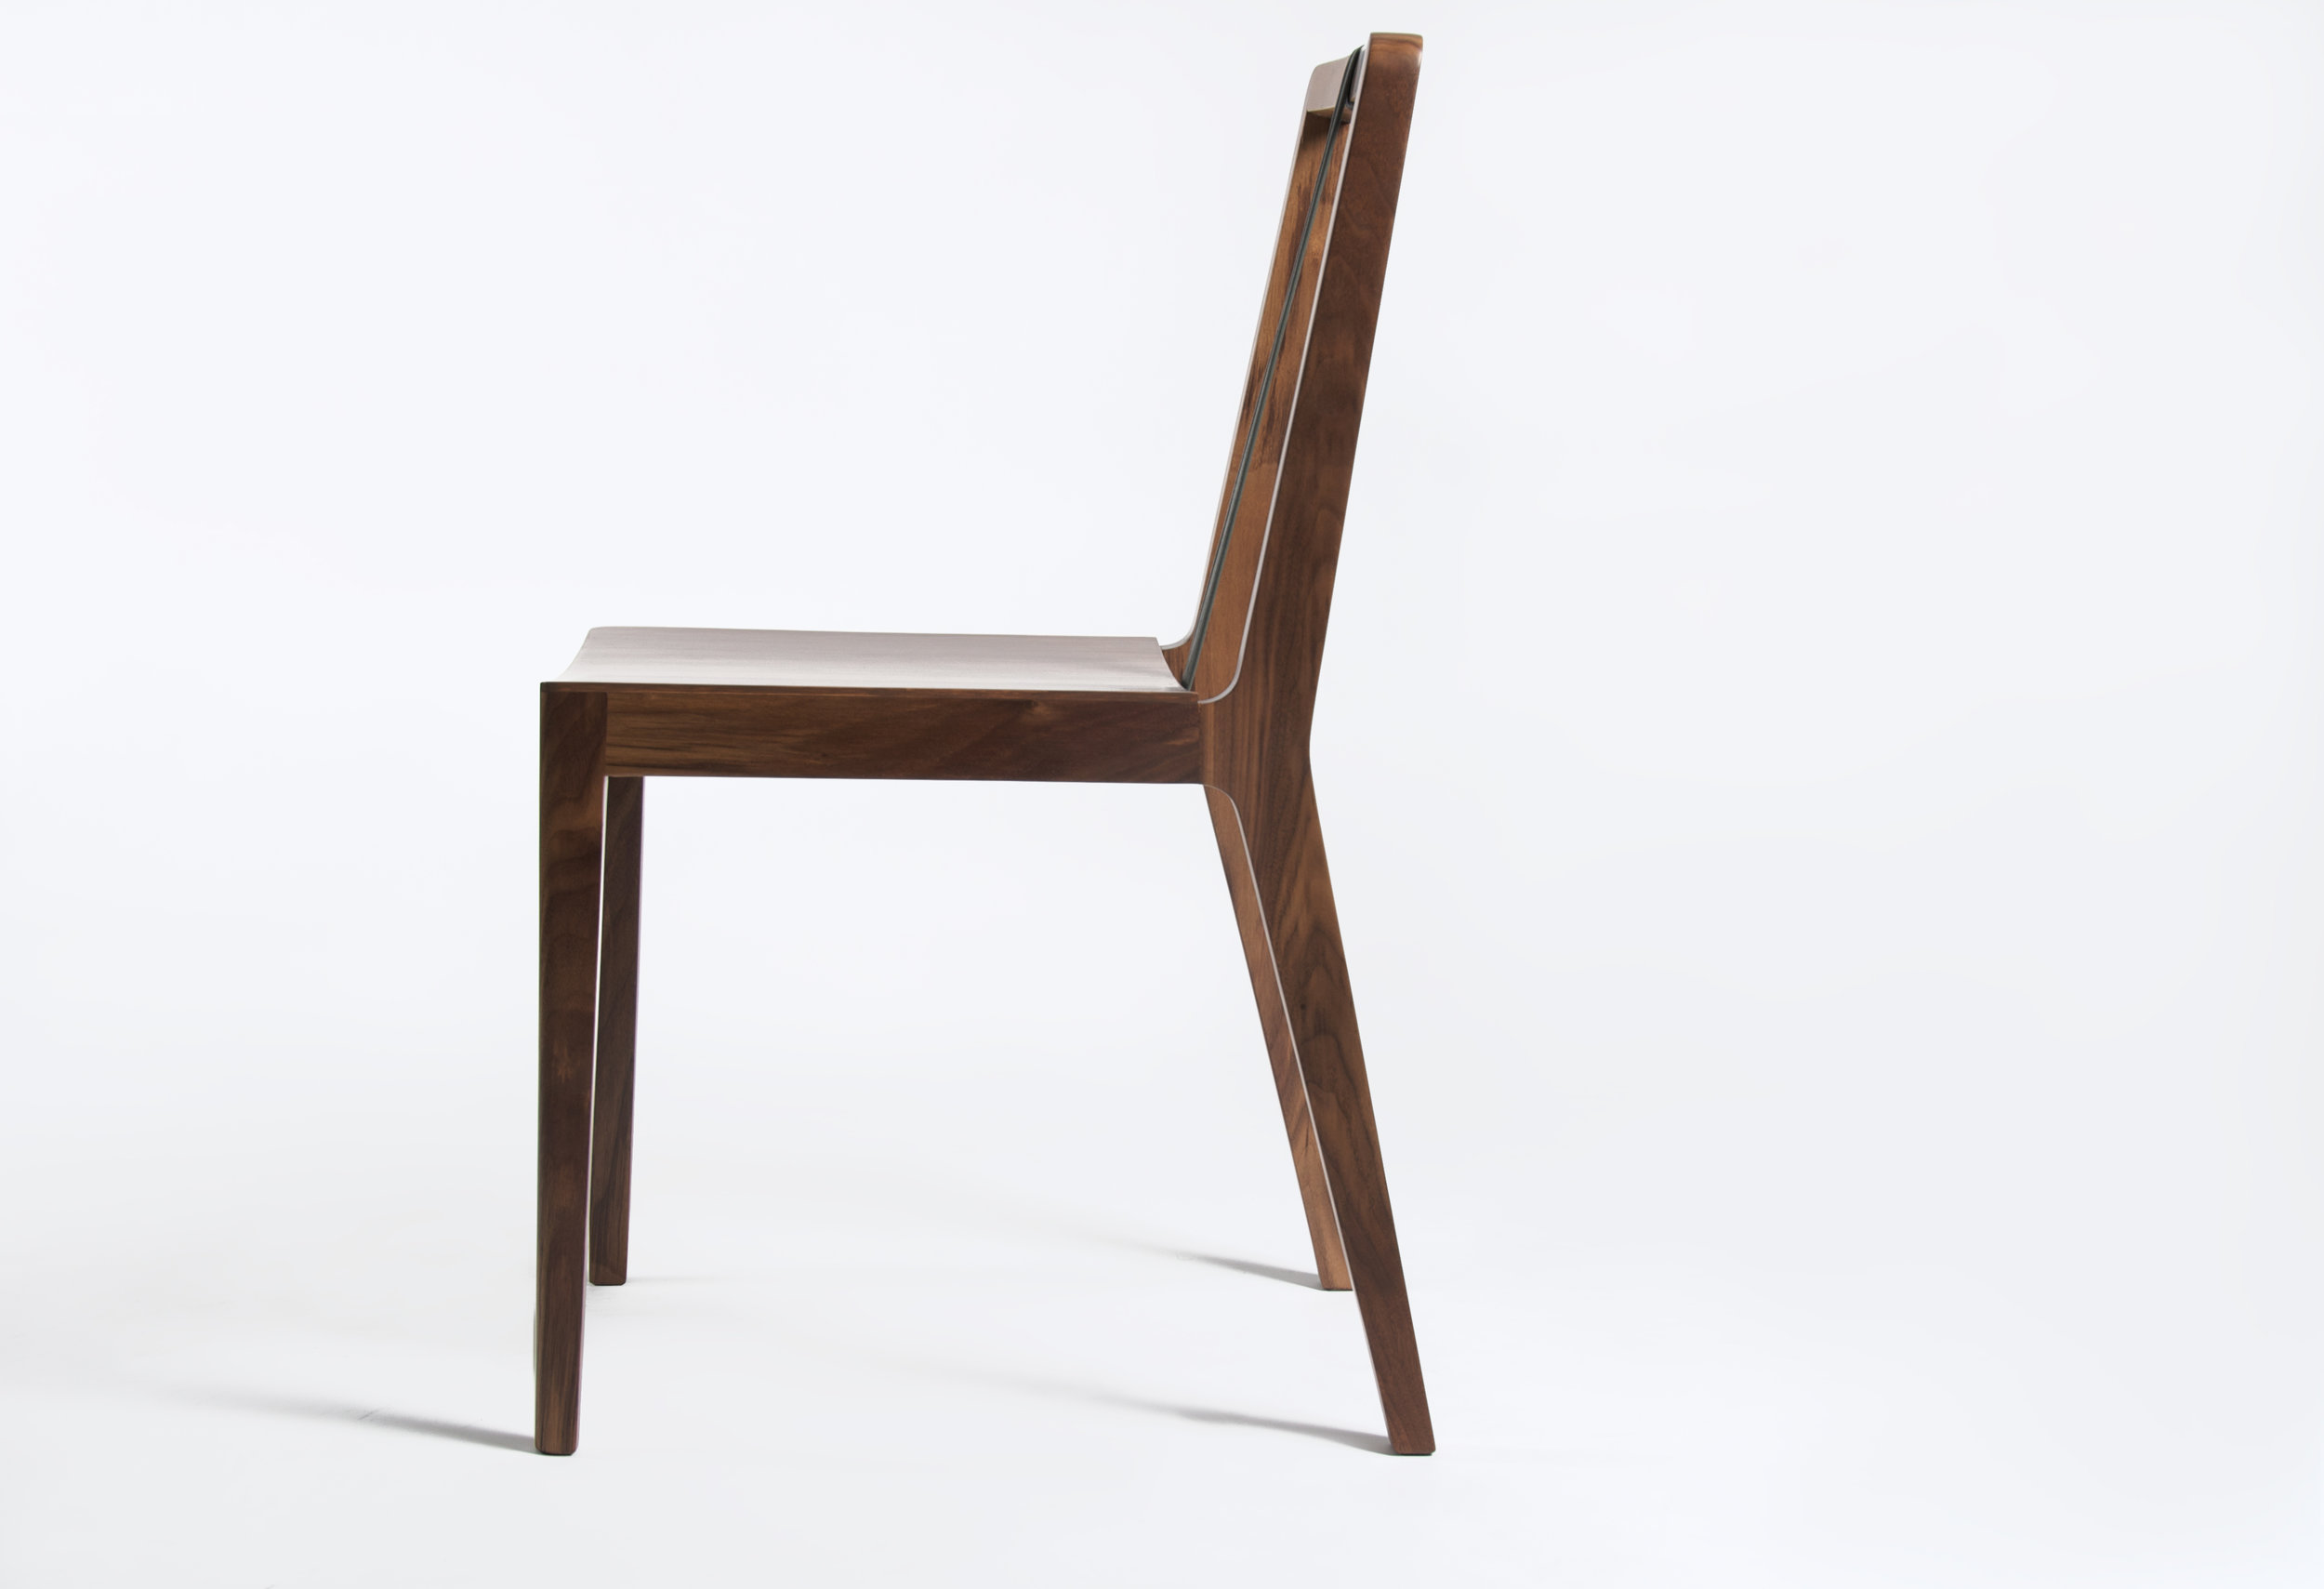 2010 / Chair / Maple, walnut, plywood, leather / Client-Producer: Bauhaus Möbel® / Awarded National Design Biennial 2011    Over time the tie and suspenders have been important symbols in fashion history. The Tie Chair uses these functional and decorative elements to acquire its own identity by using leather ribbons, this gives not only a determined aesthetic personality but also give support and security in the back area.